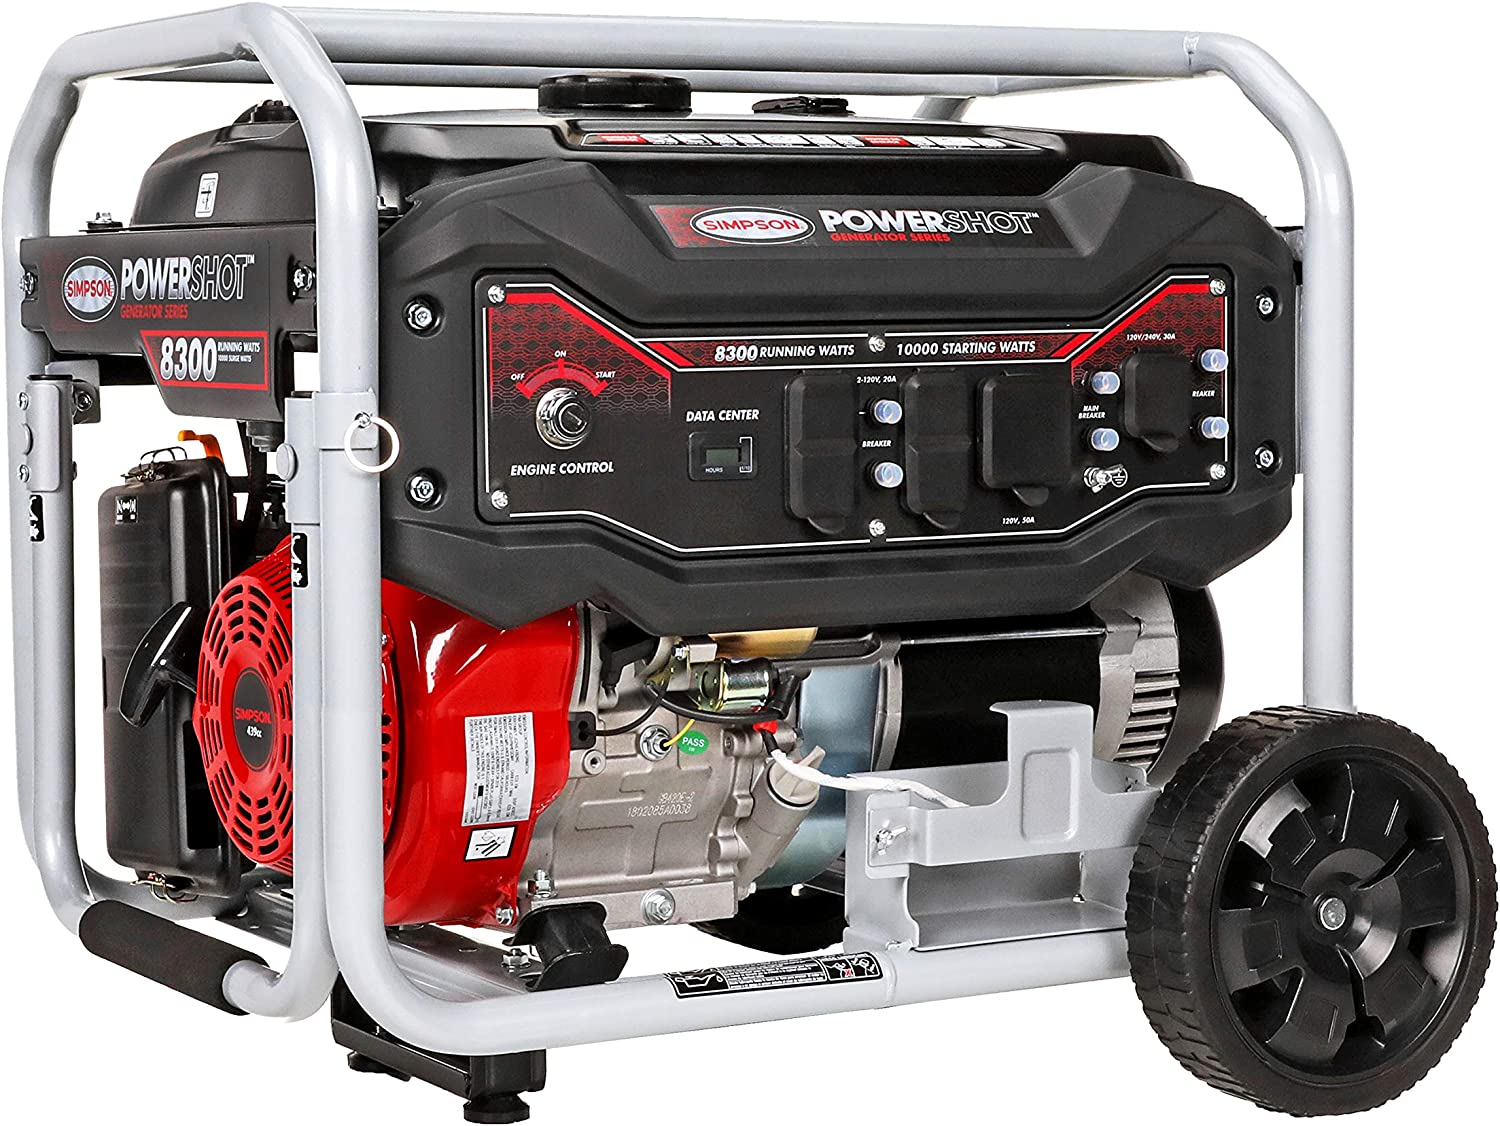 SIMPSON Cleaning SPG8310E Portable Gas Generator with Electric Start, 8300 Running Watts 10000 watts